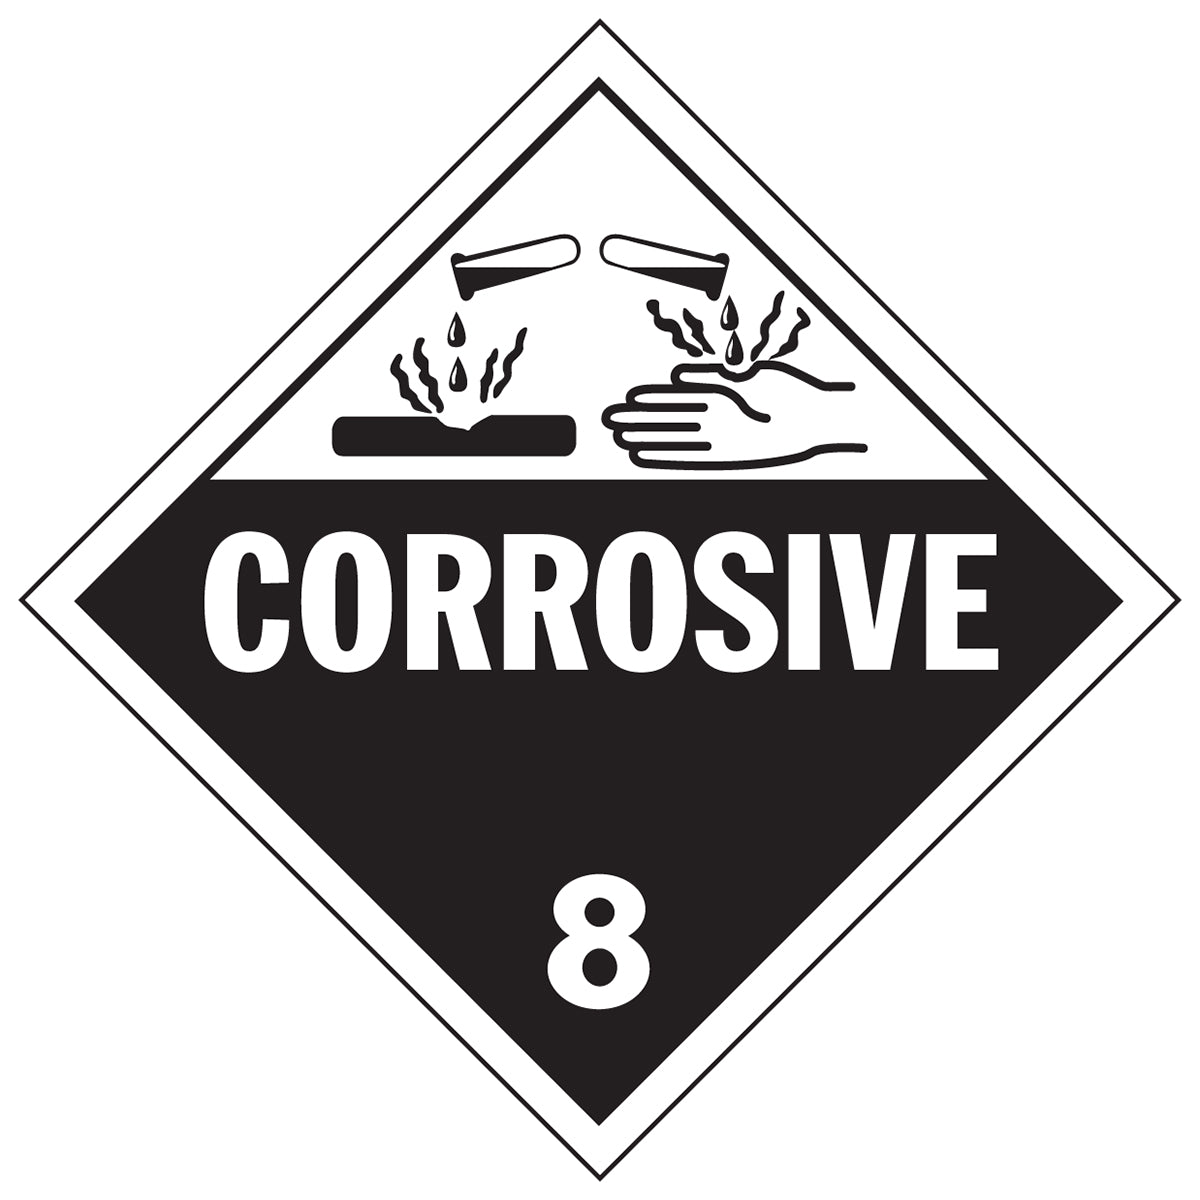 """Corrosive"" Class 8 Placard"